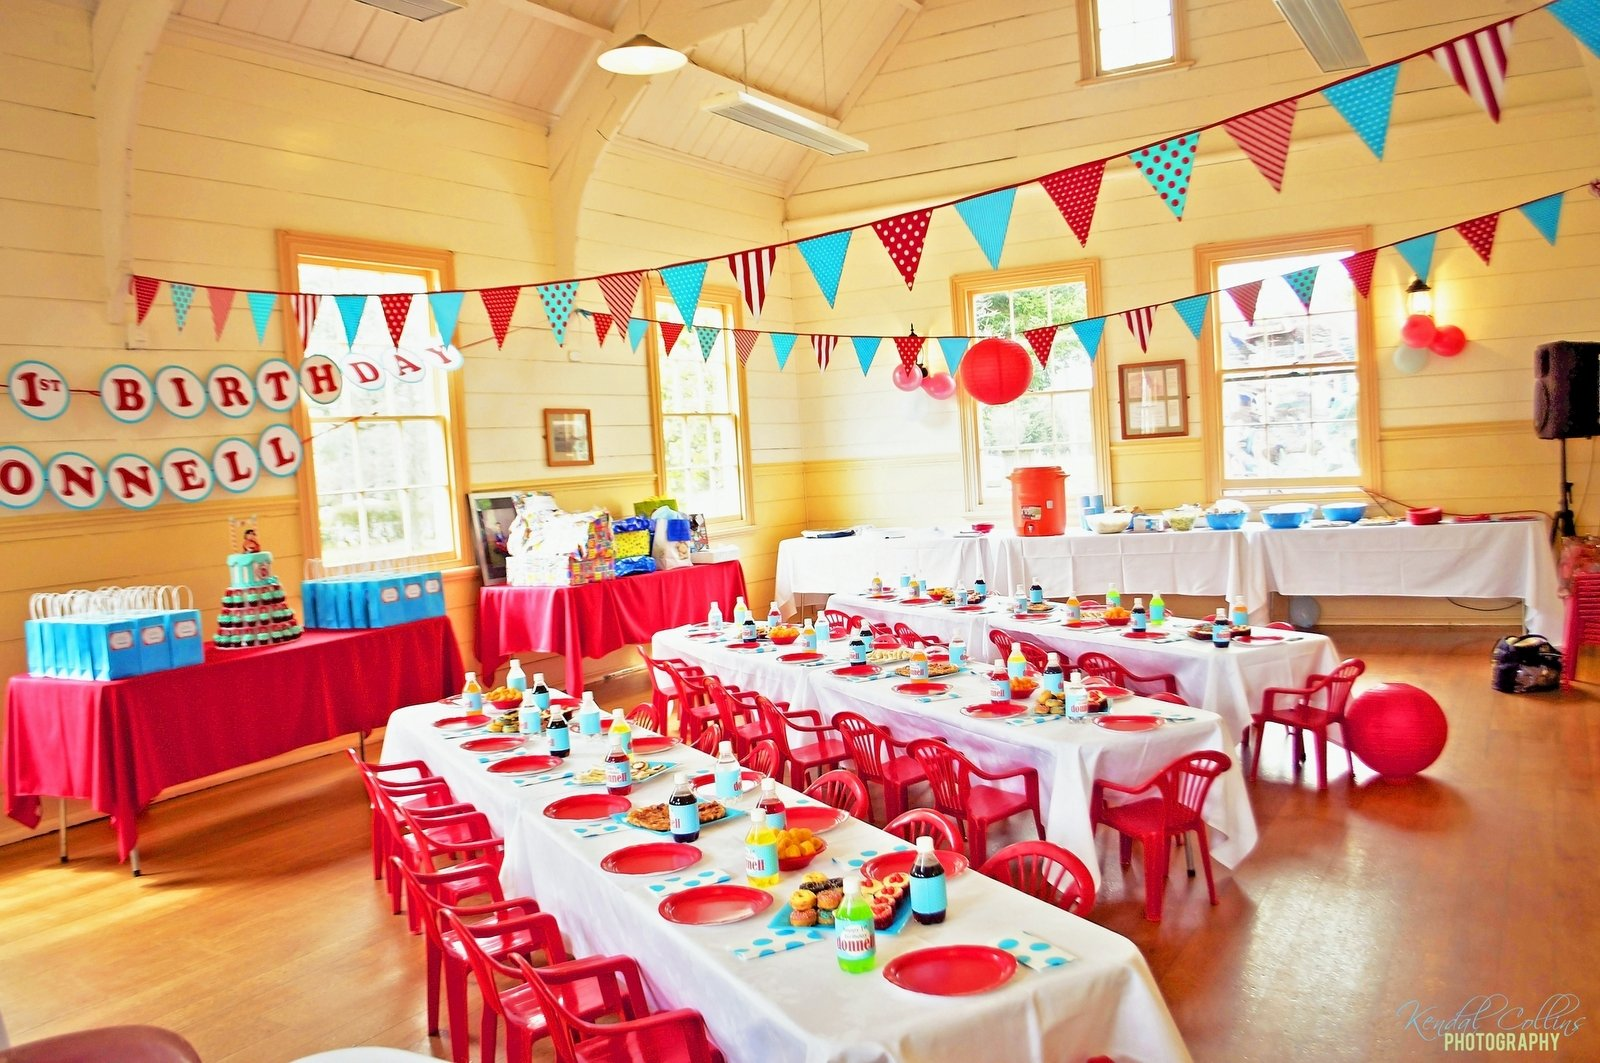 10 Lovable Indoor Birthday Party Ideas For Toddlers indoor birthday party ideas for toddlers party ideas for kids 2020